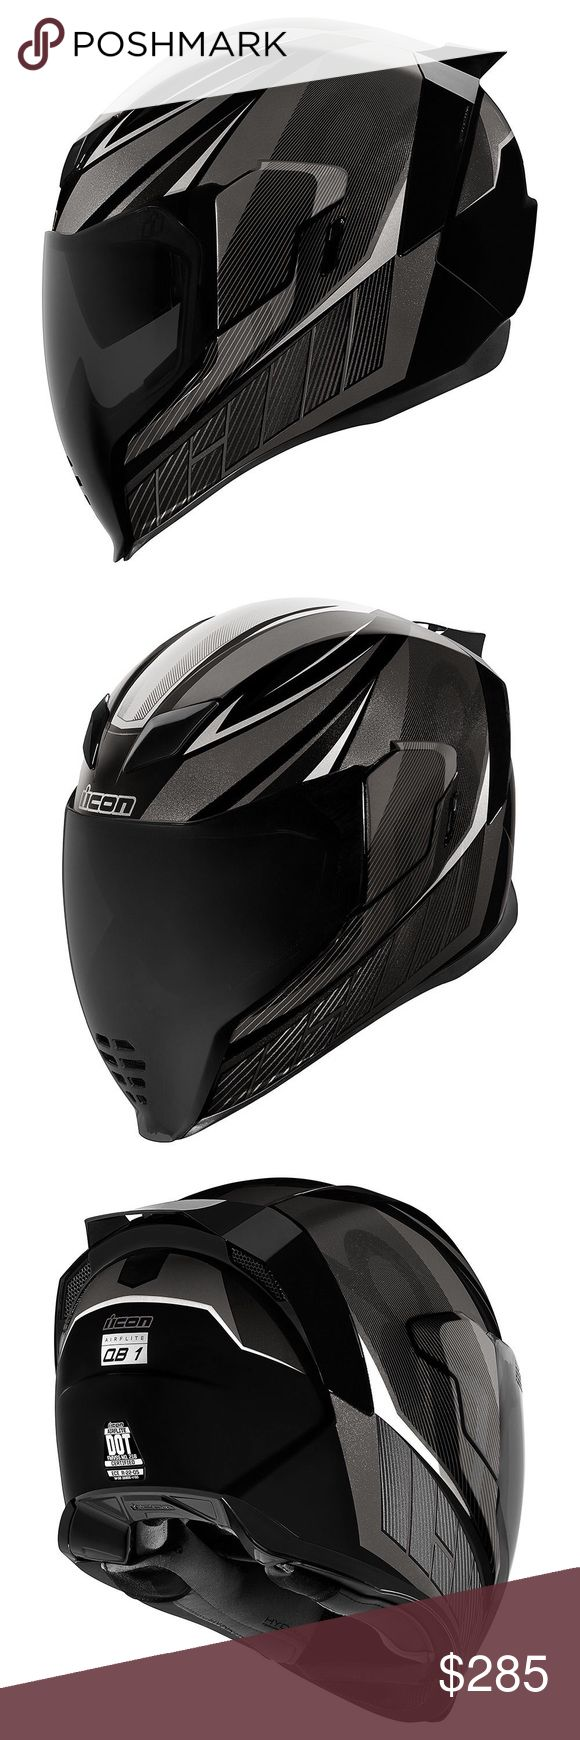 Icon Airflite QB1 motorcycle helmet new WORLD STANDARD